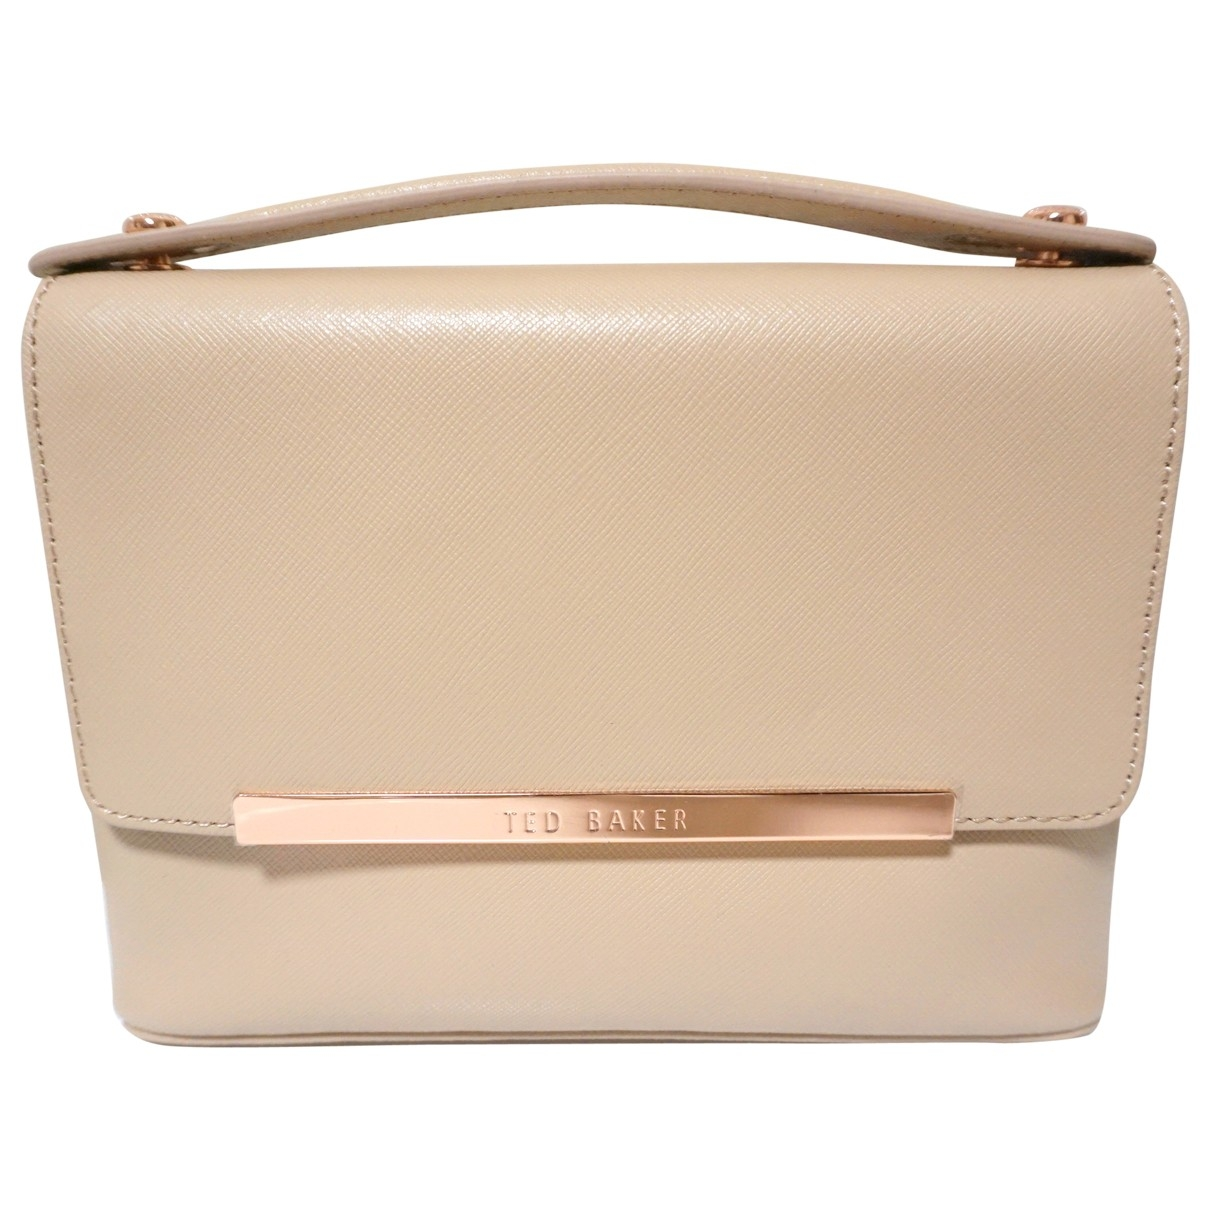 Ted Baker \N Leather handbag for Women \N